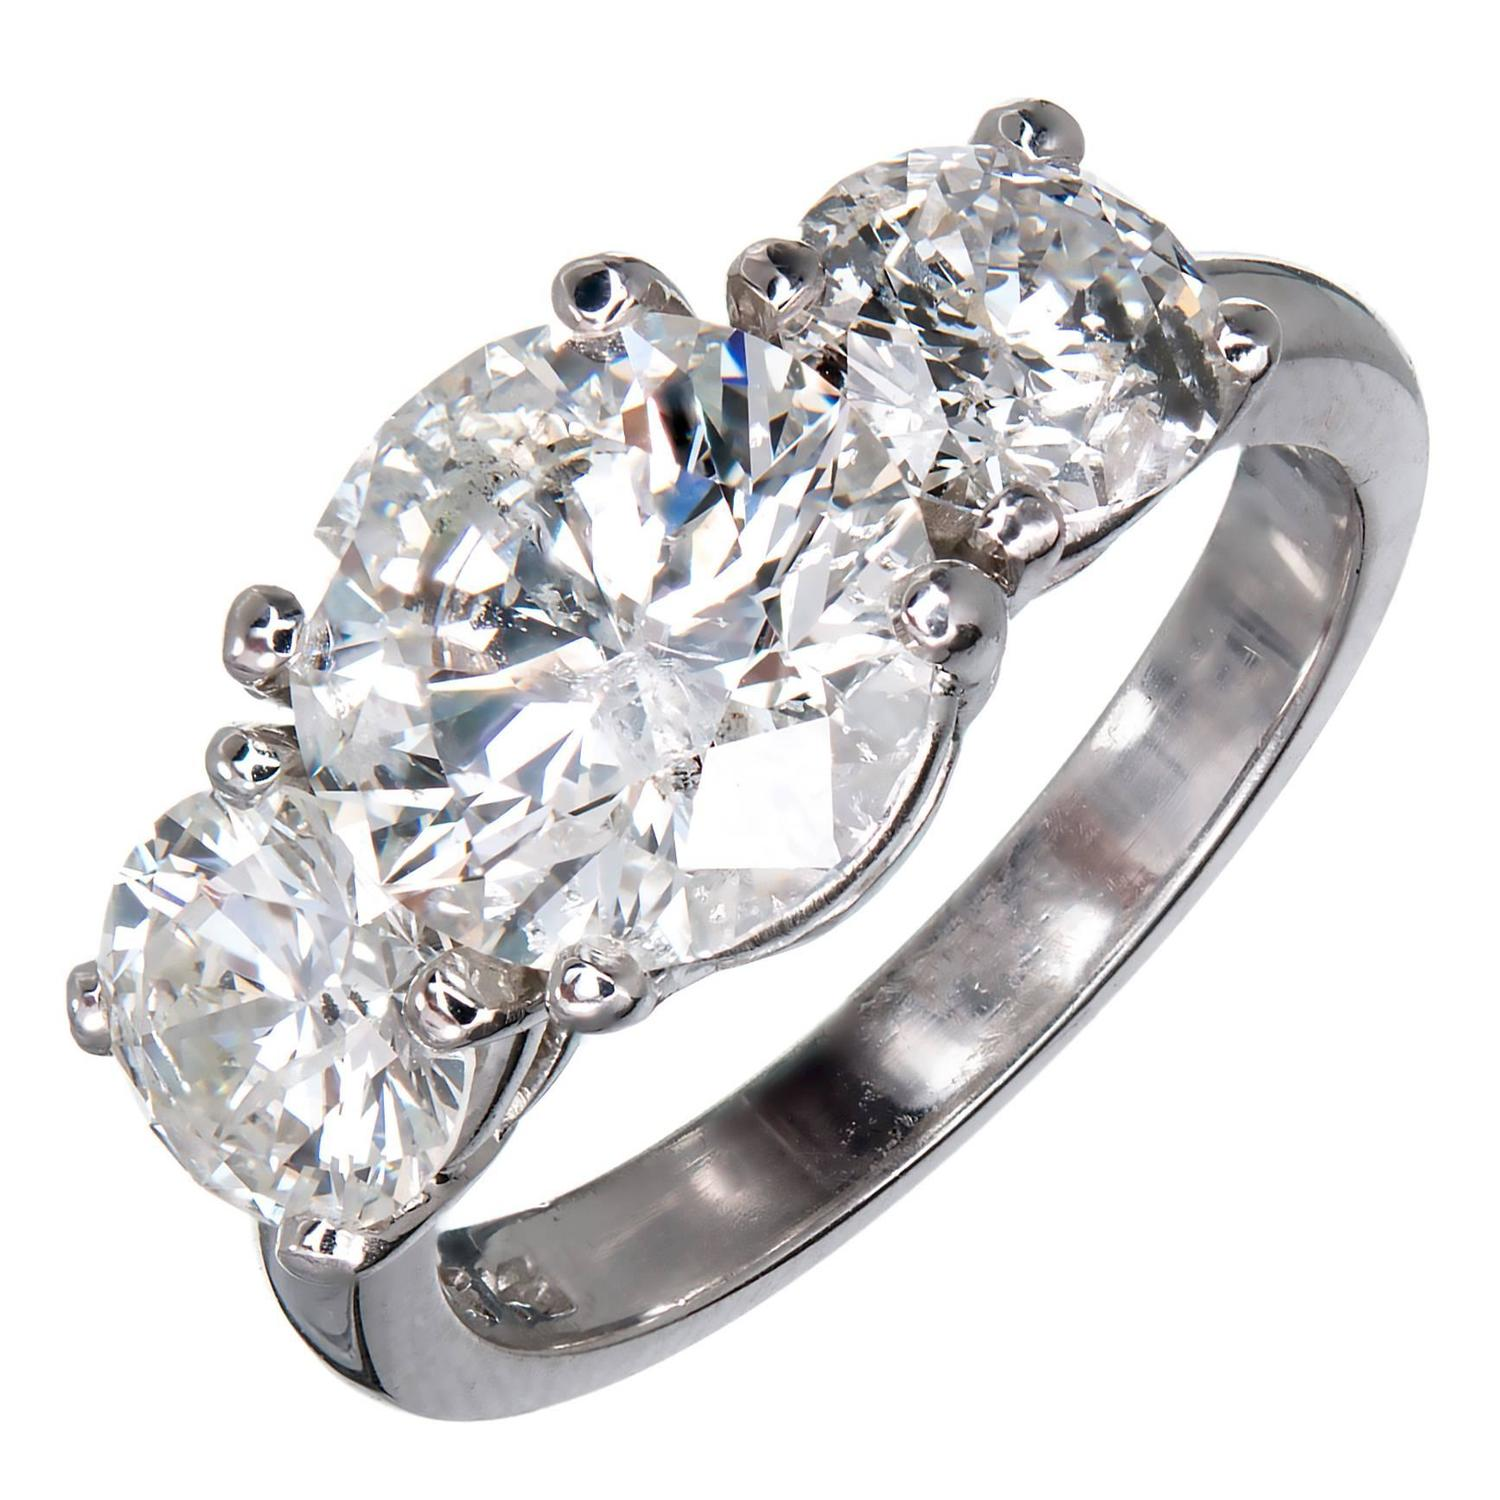 rings ring square ideal universe engagement jewellery center diamond squared my of lugaro bridal the gorgeous